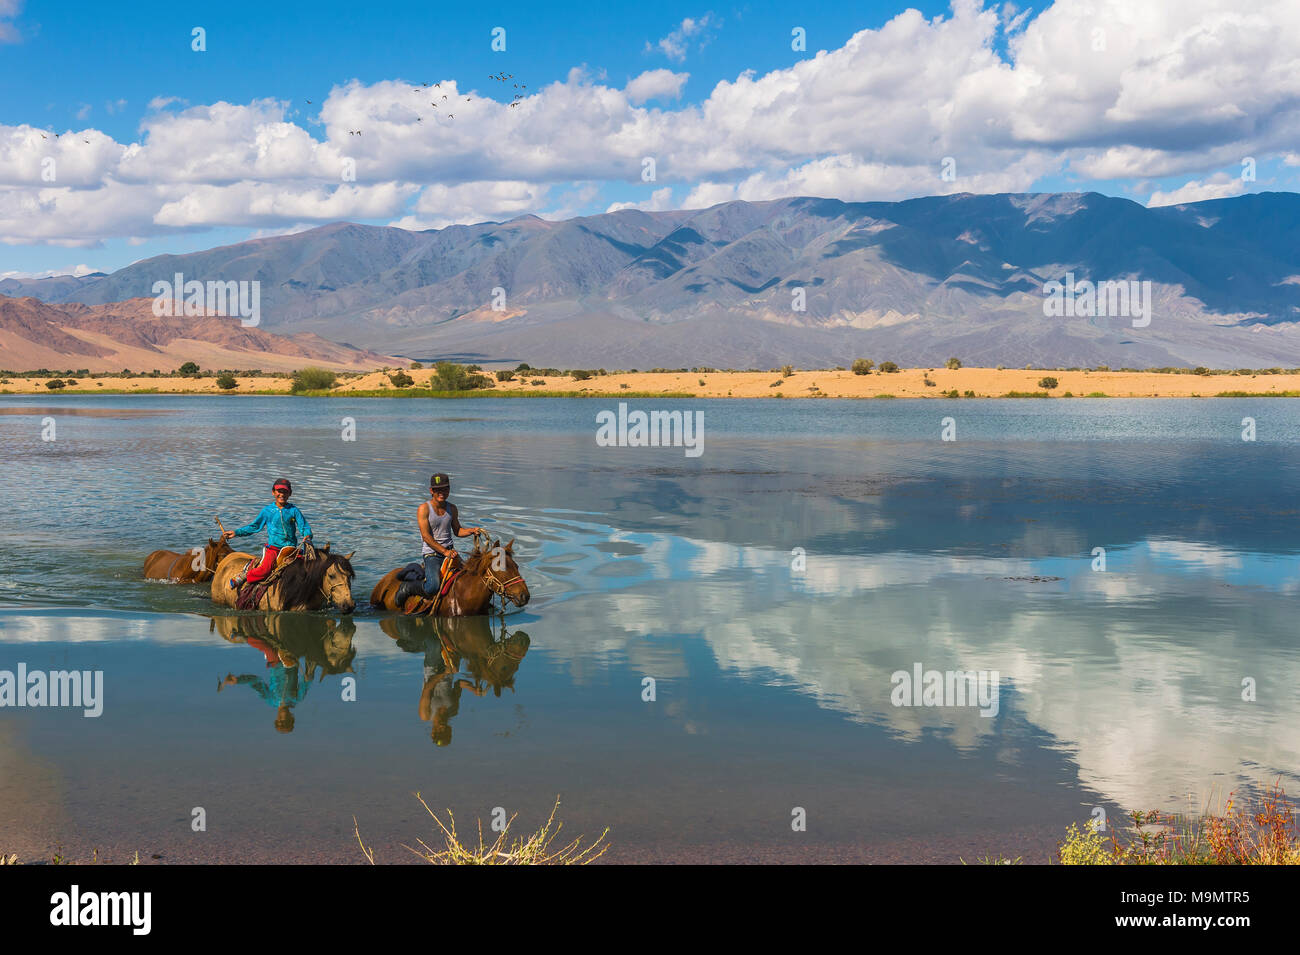 Nomad kids on horses crossing the Tuul river during summer time, Gorkhi-Terelj National Park, Mongolia - Stock Image